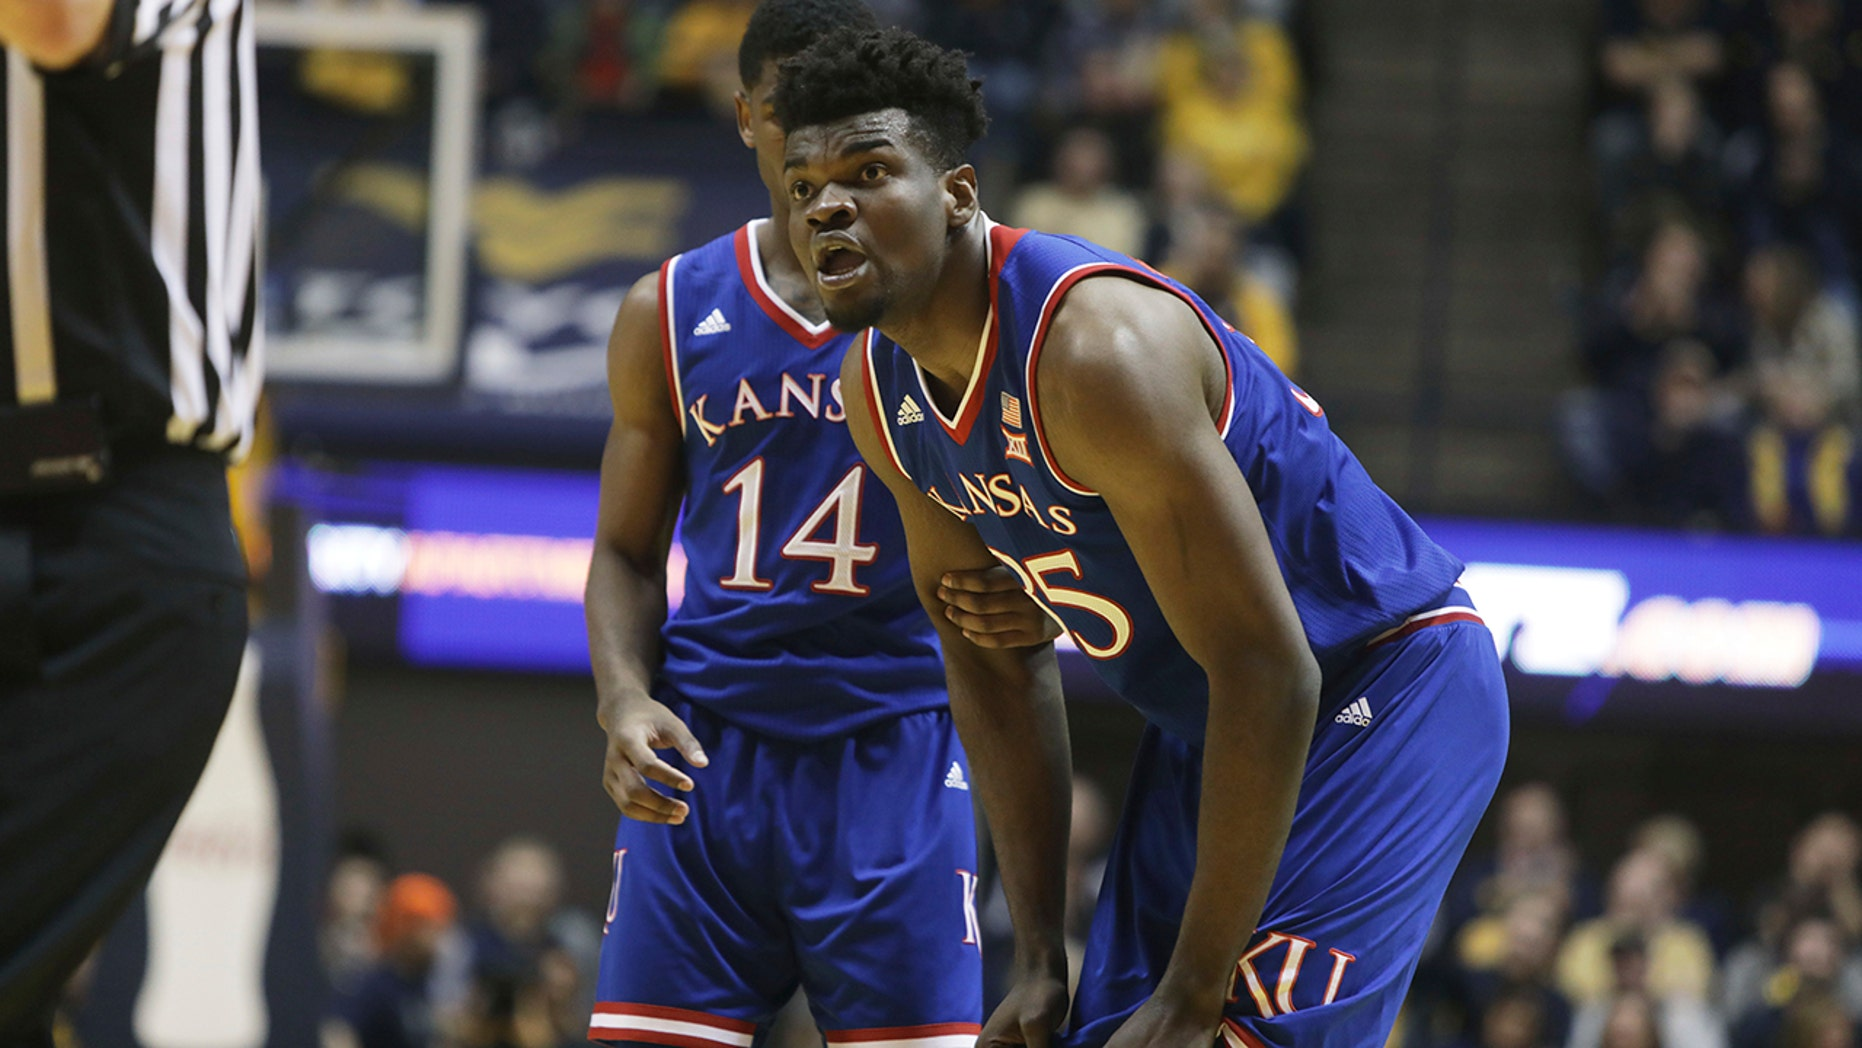 Kansas center Udoka Azubuike reacts after being called for a technical foul during the first half of a game against West Virginia.